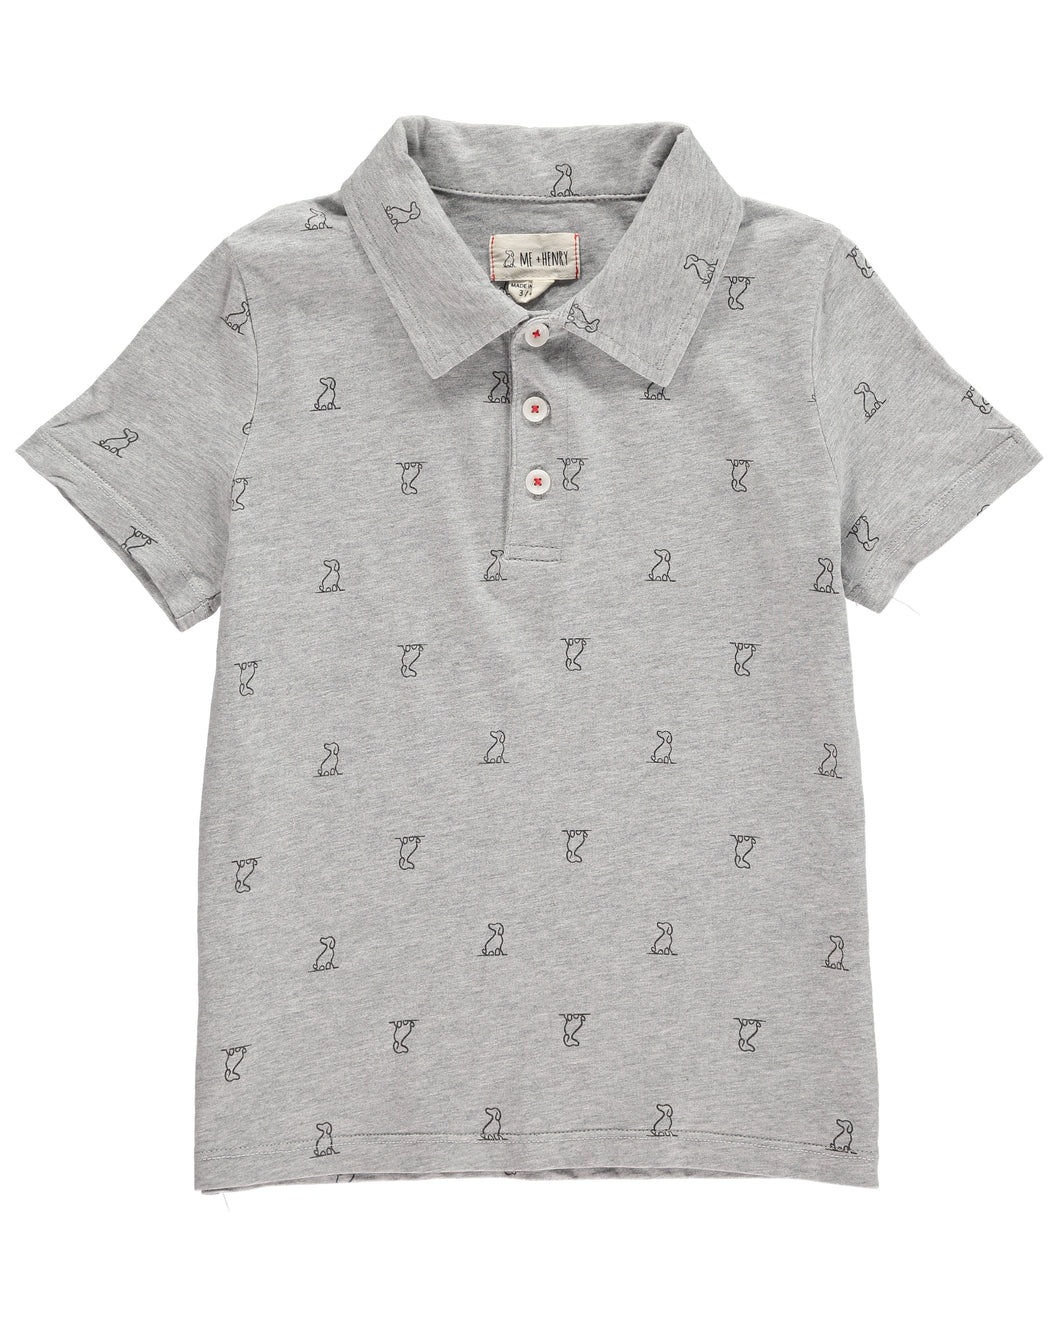 Dark grey Henry print polo